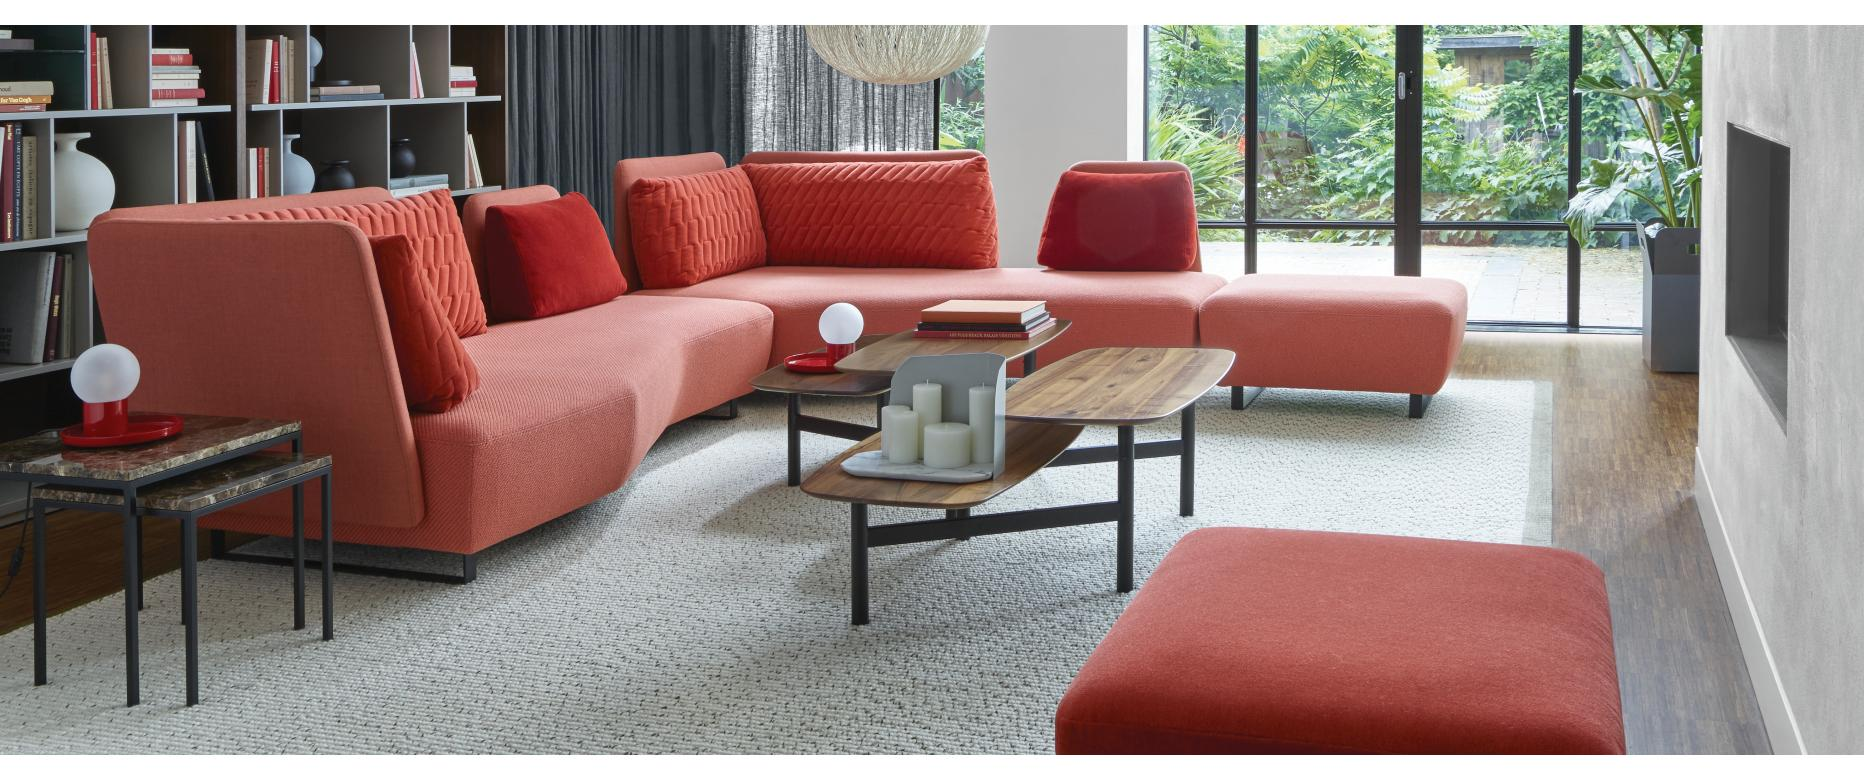 Tv Audio Meubel Lars.Ligne Roset Official Site Contemporary High End Furniture